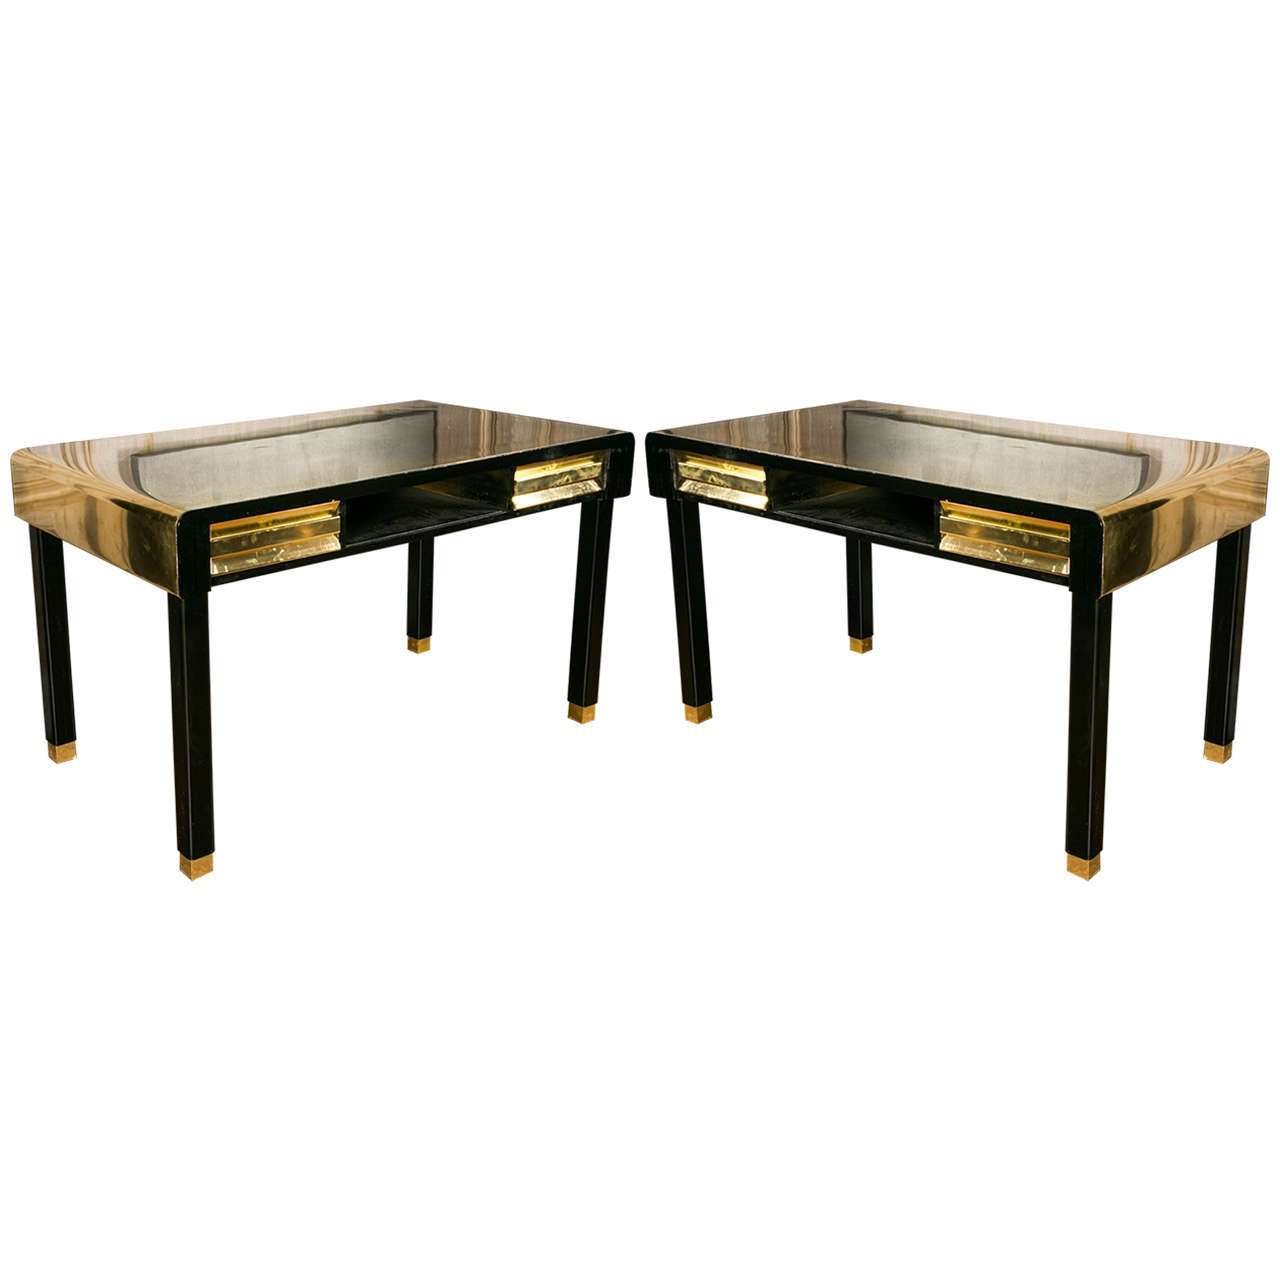 Pair of vintage brass tables at cost price.